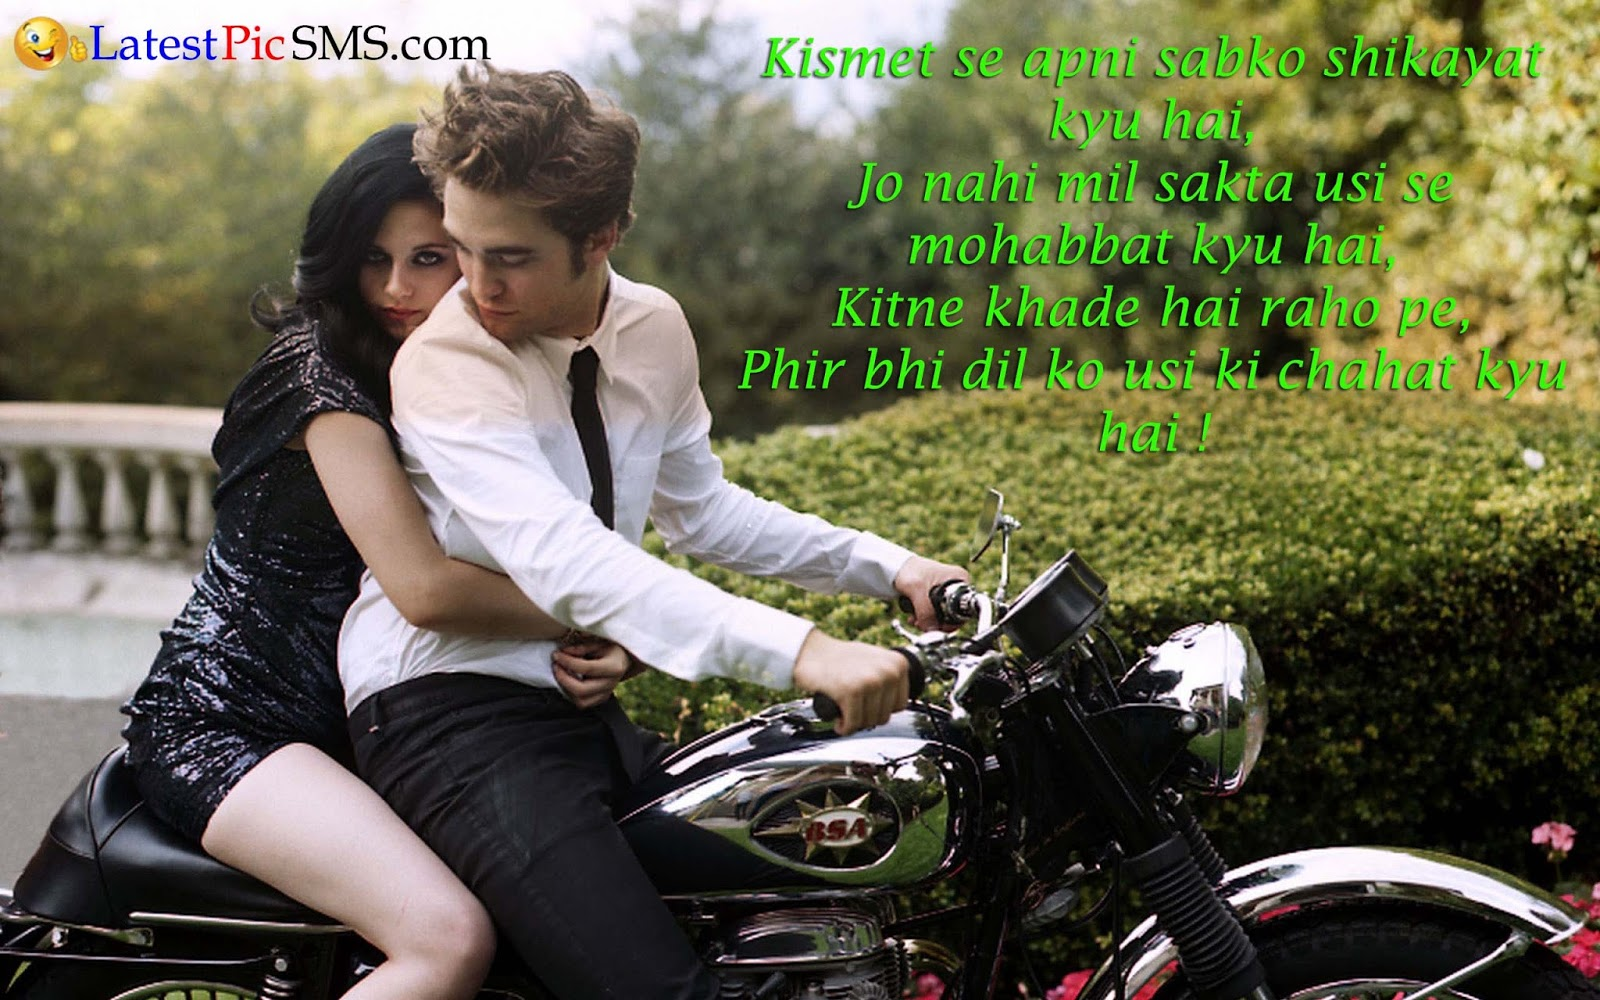 bike%2Blove%2Bshayari%2Bwallppaer - Best Love Shayari with Photo Quotes for Whatsapp & Facebook